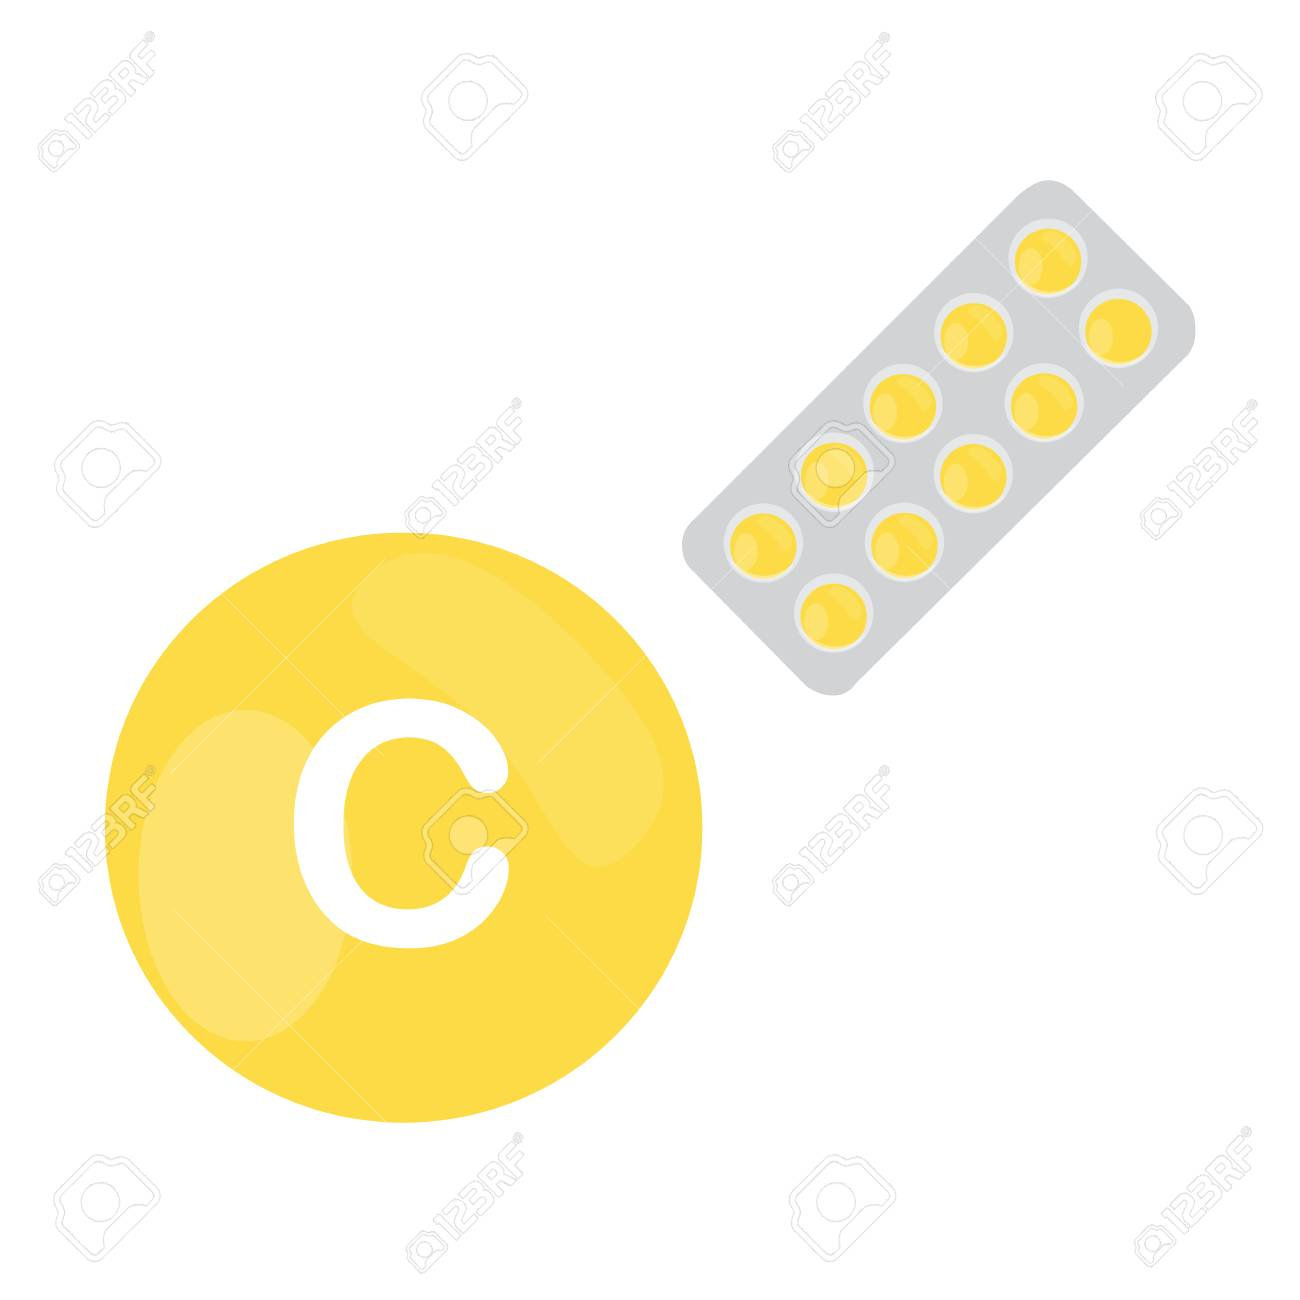 Vitamin C With Blister Of Pills Tablets Capsules Yellow Circle